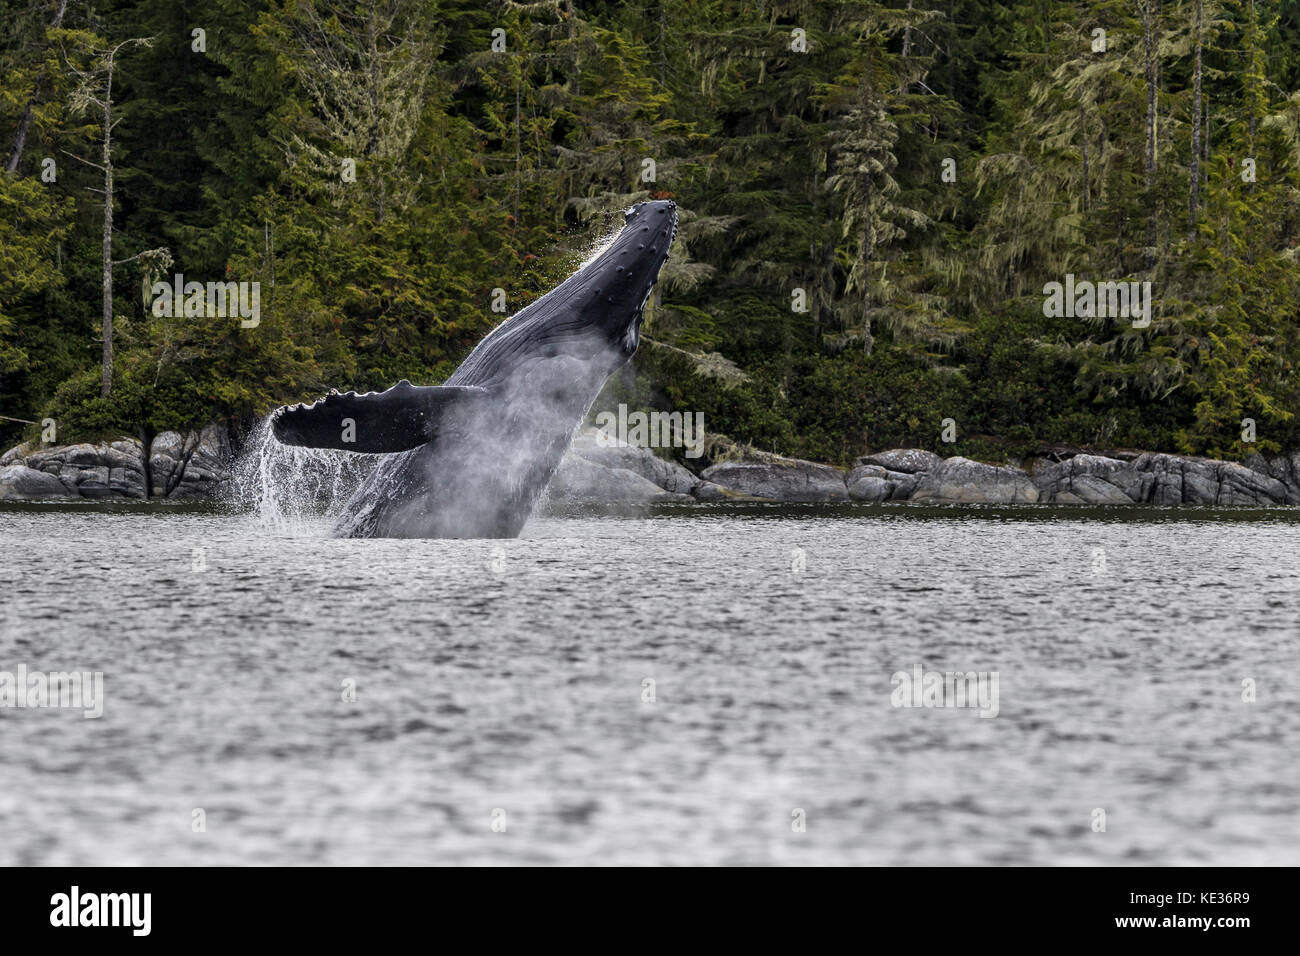 Humpback whale breaching off northern Vancouver Island, British Columbia, Canada. - Stock Image